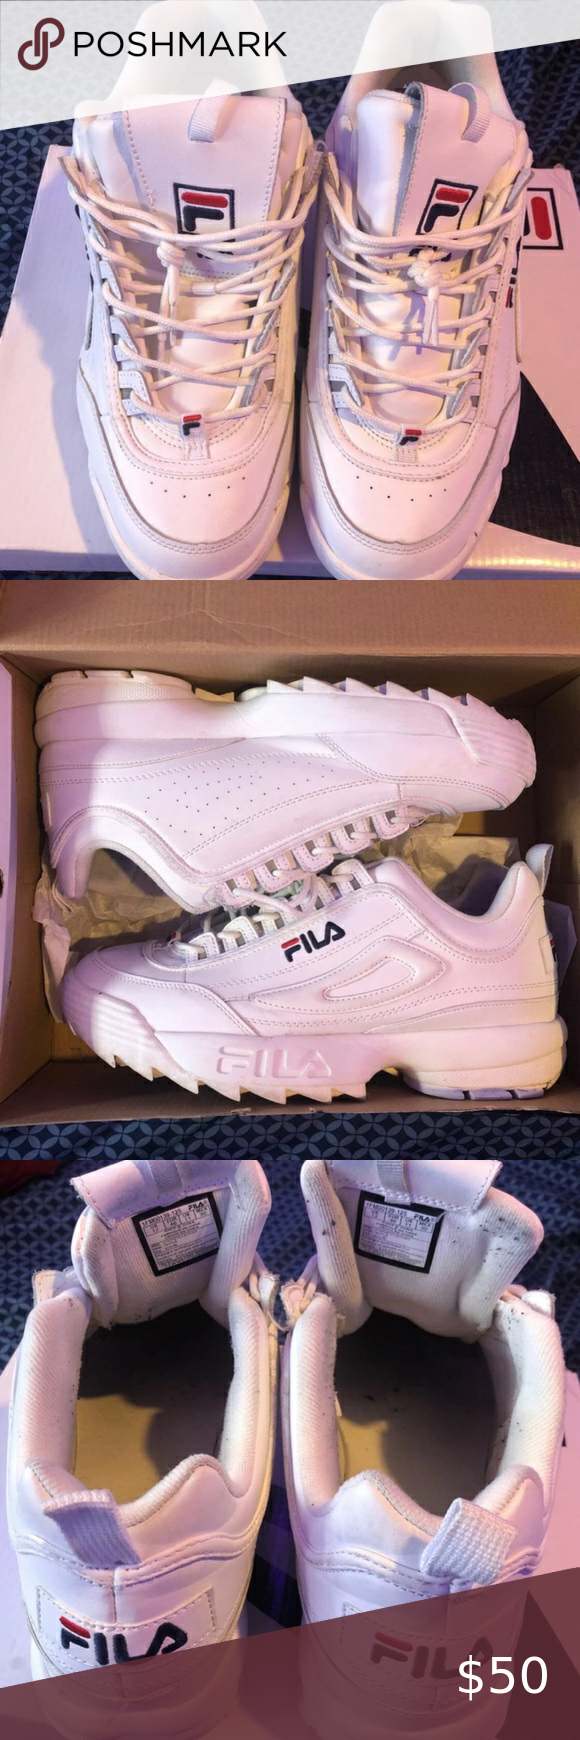 Fila Disruptors These shoes are white